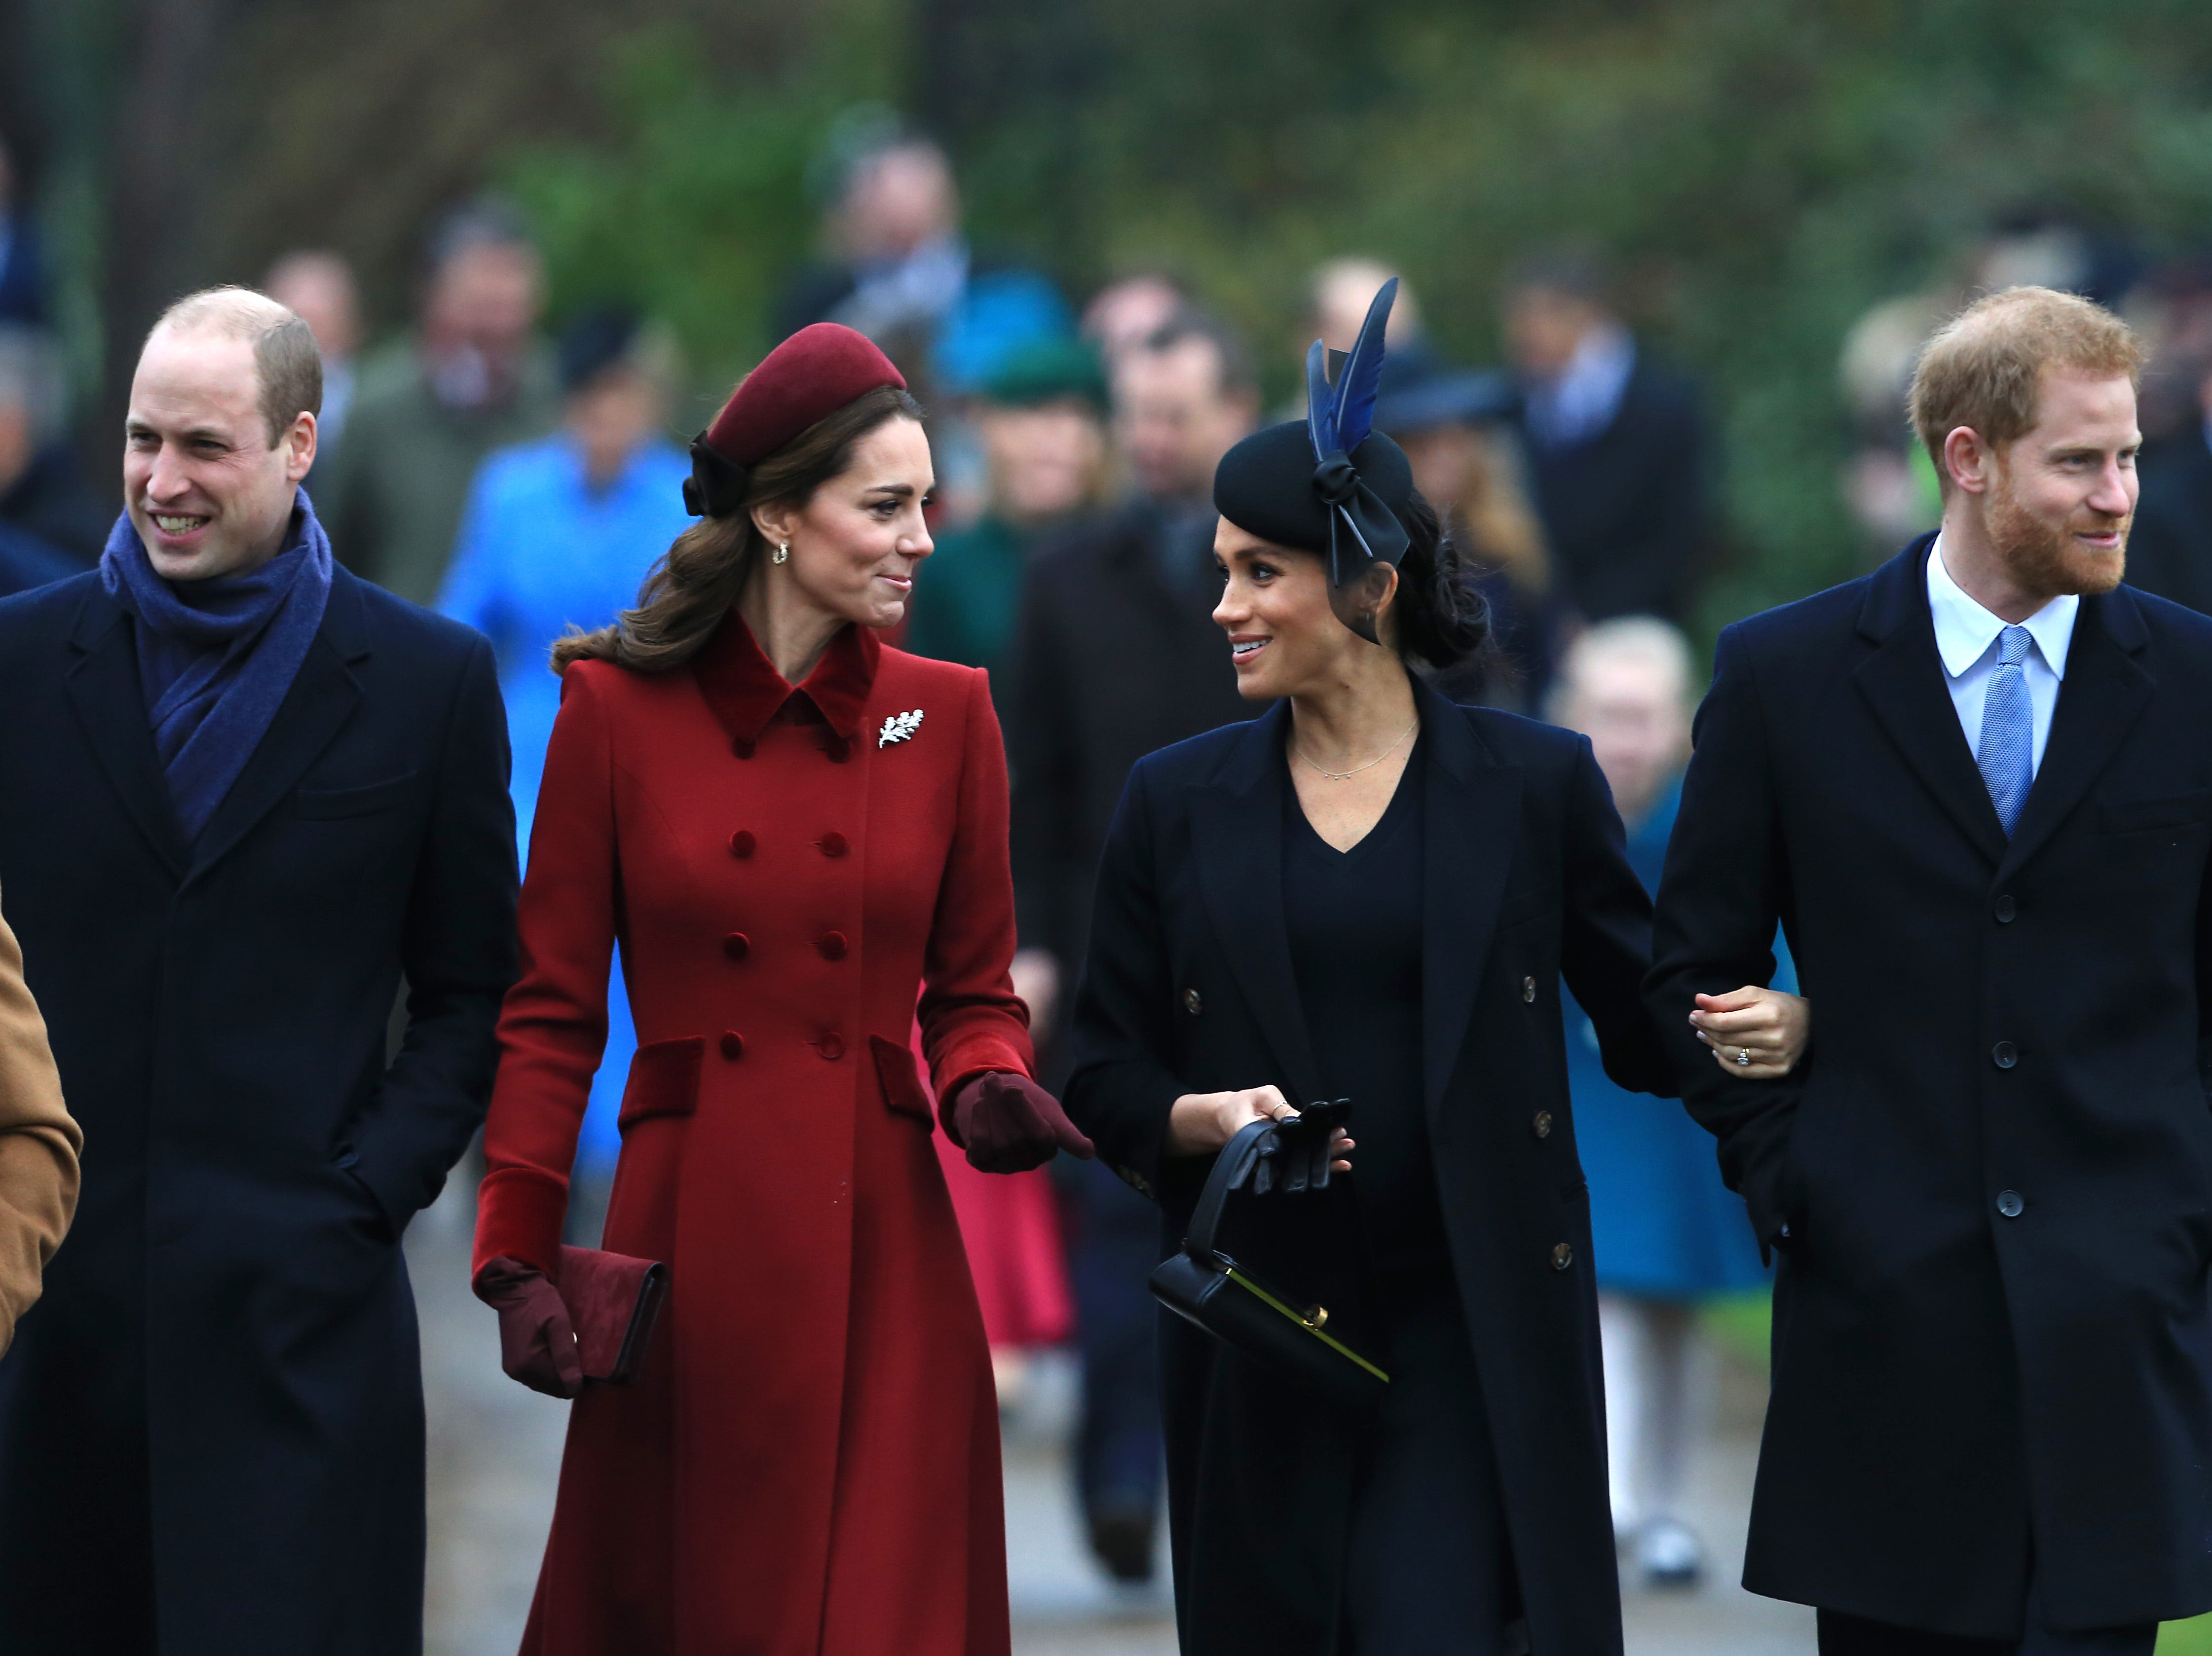 KING'S LYNN, ENGLAND - DECEMBER 25: (L-R) Prince William, Duke of Cambridge, Catherine, Duchess of Cambridge, Meghan, Duchess of Sussex and Prince Harry, Duke of Sussex arrive to attend Christmas Day Church service at Church of St Mary Magdalene on the Sandringham estate on December 25, 2018 in King's Lynn, England. (Photo by Stephen Pond/Getty Images) ORG XMIT: 775272416 ORIG FILE ID: 1086570358